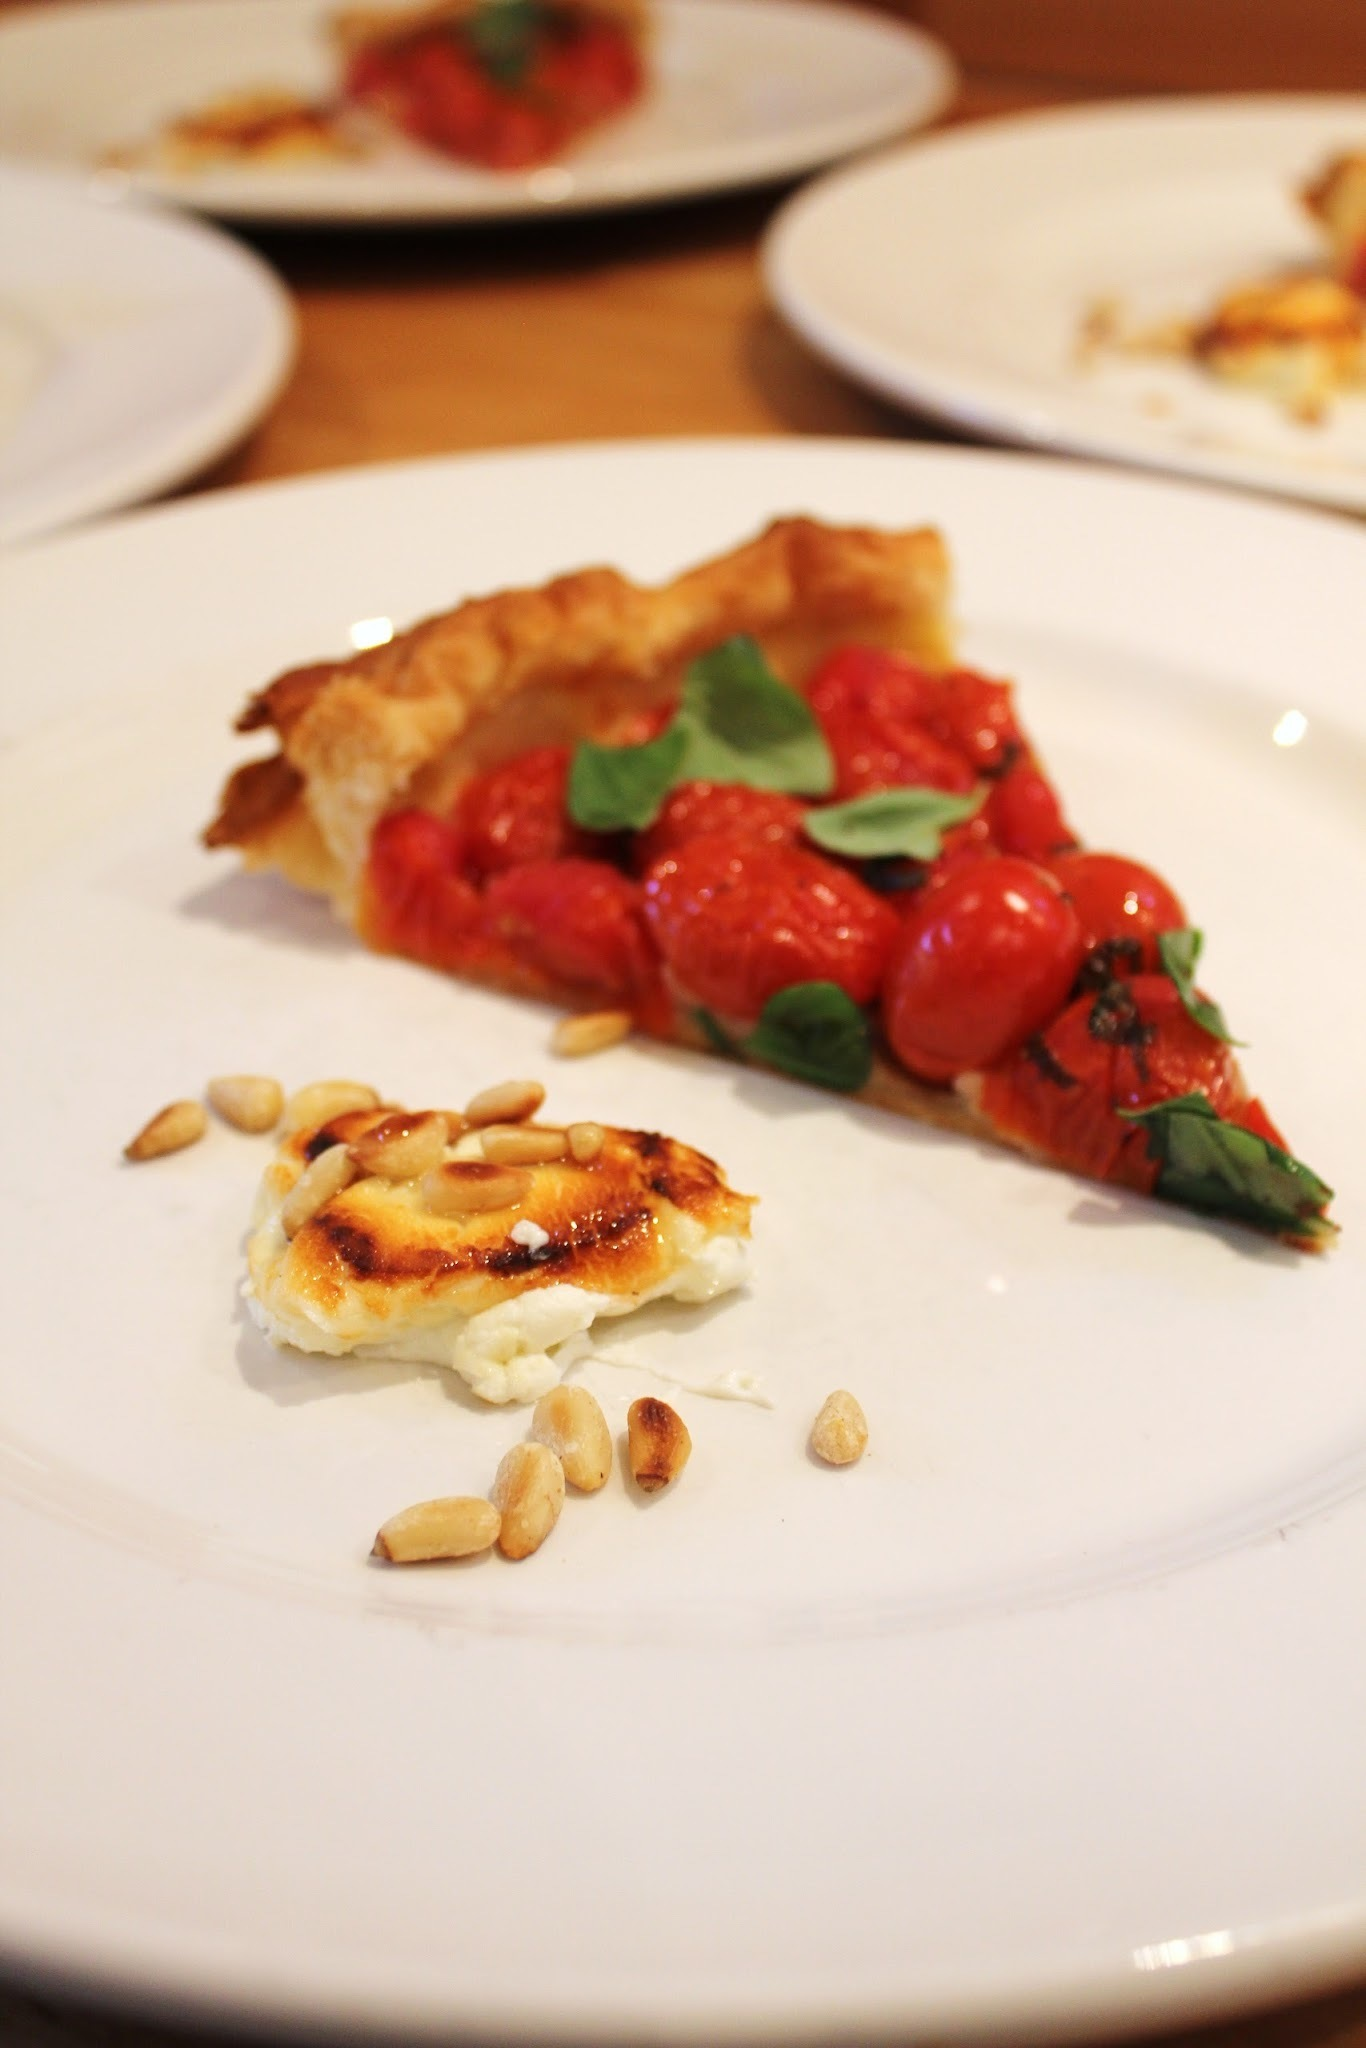 Baby Plum Tomato Tart with Grilled Goat's Cheese and Roasted Pine Nuts